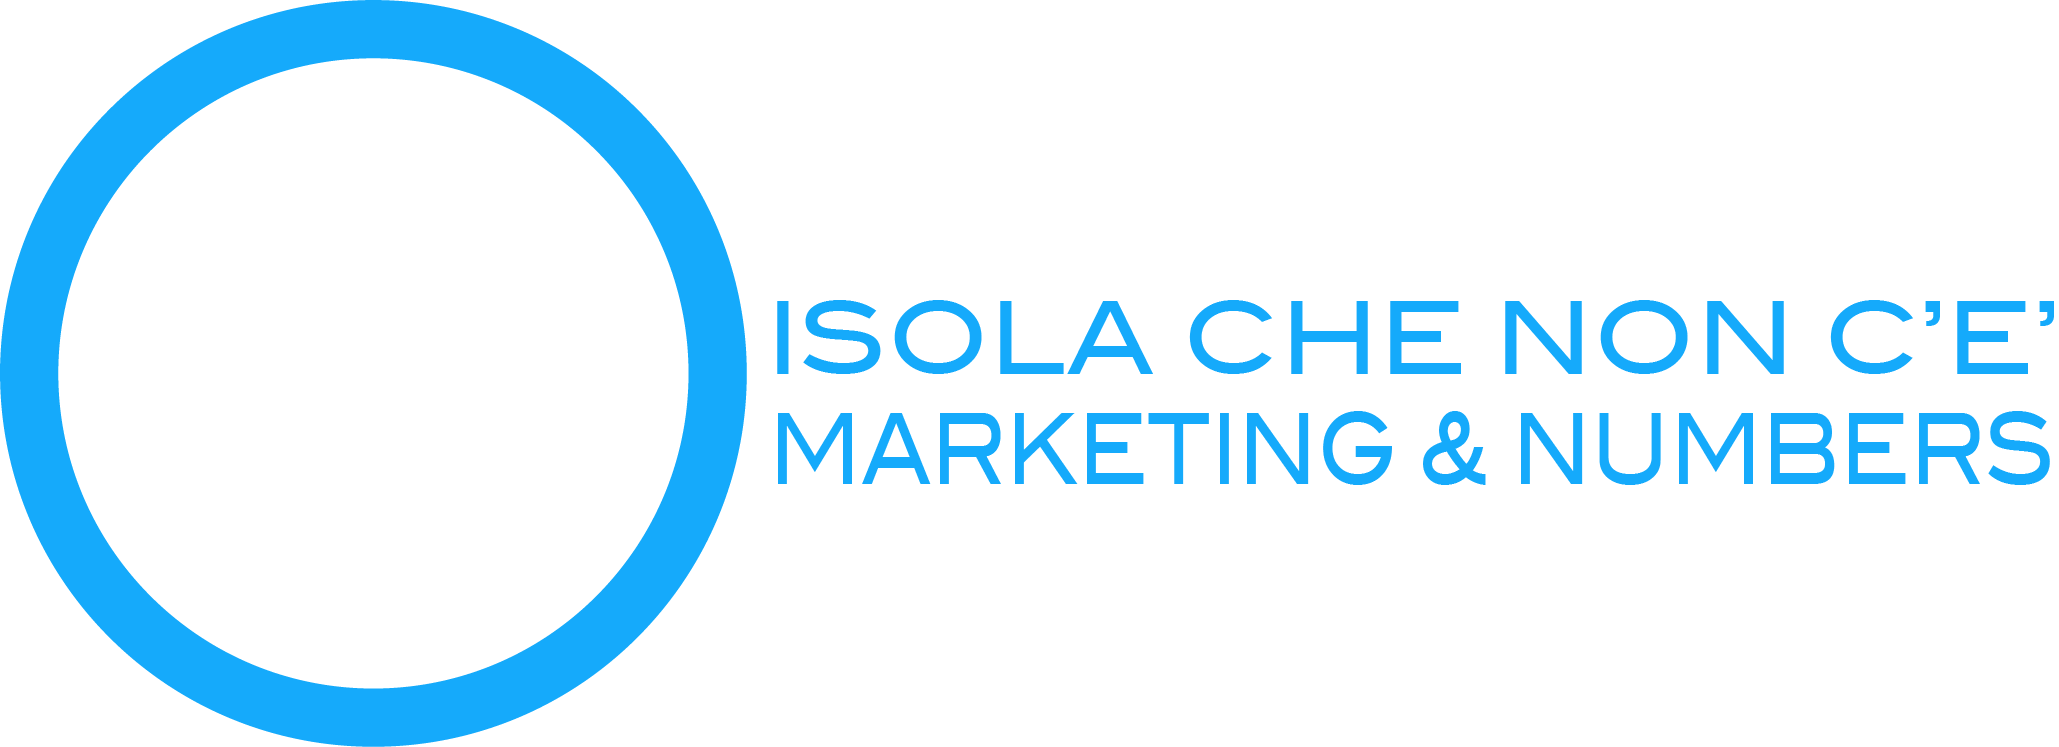 Marketing-roi-social-media